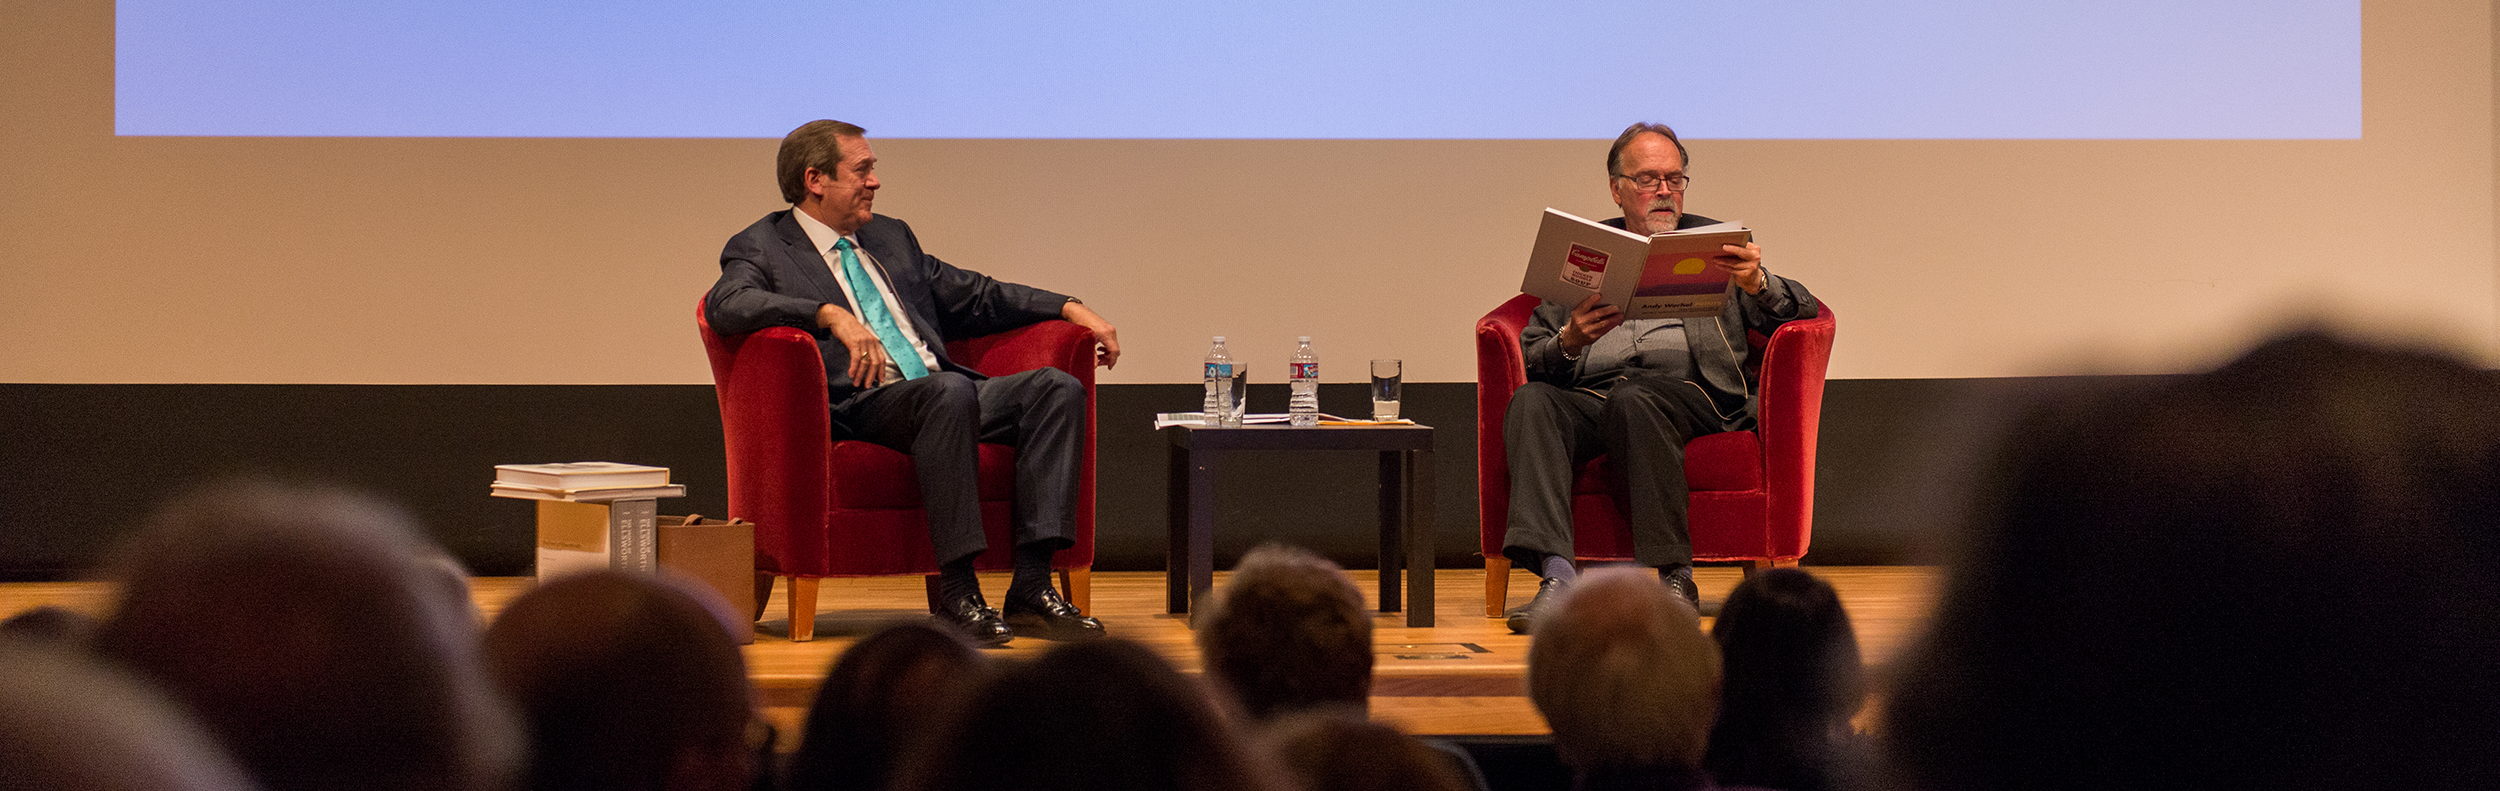 Jordan D. Schnitzer and Rick Axsom discuss Andy Warhol at the Portland Art Museum's lecture,  Collecting Warhol: A Conversation with Jordan Schnitzer , 2016. Photo credit: Michael Robert